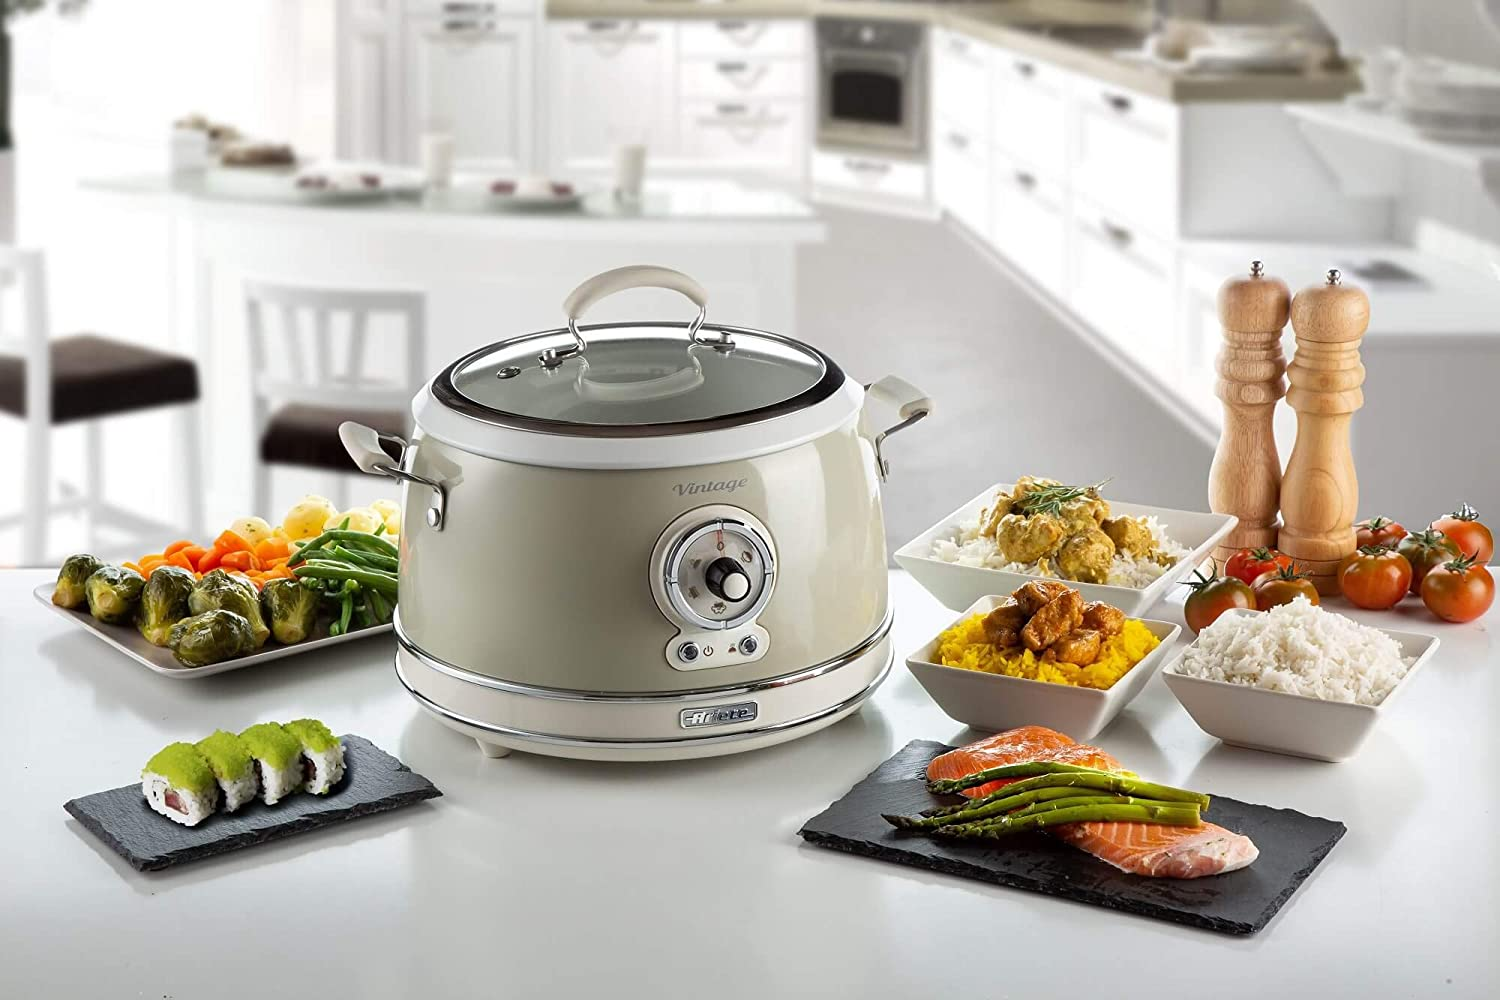 Beige Rice Cooker 3.5 L Vintage Line Steaming Ariete 2904 650 W Slow Cooker Non-stick Ceramic Coating